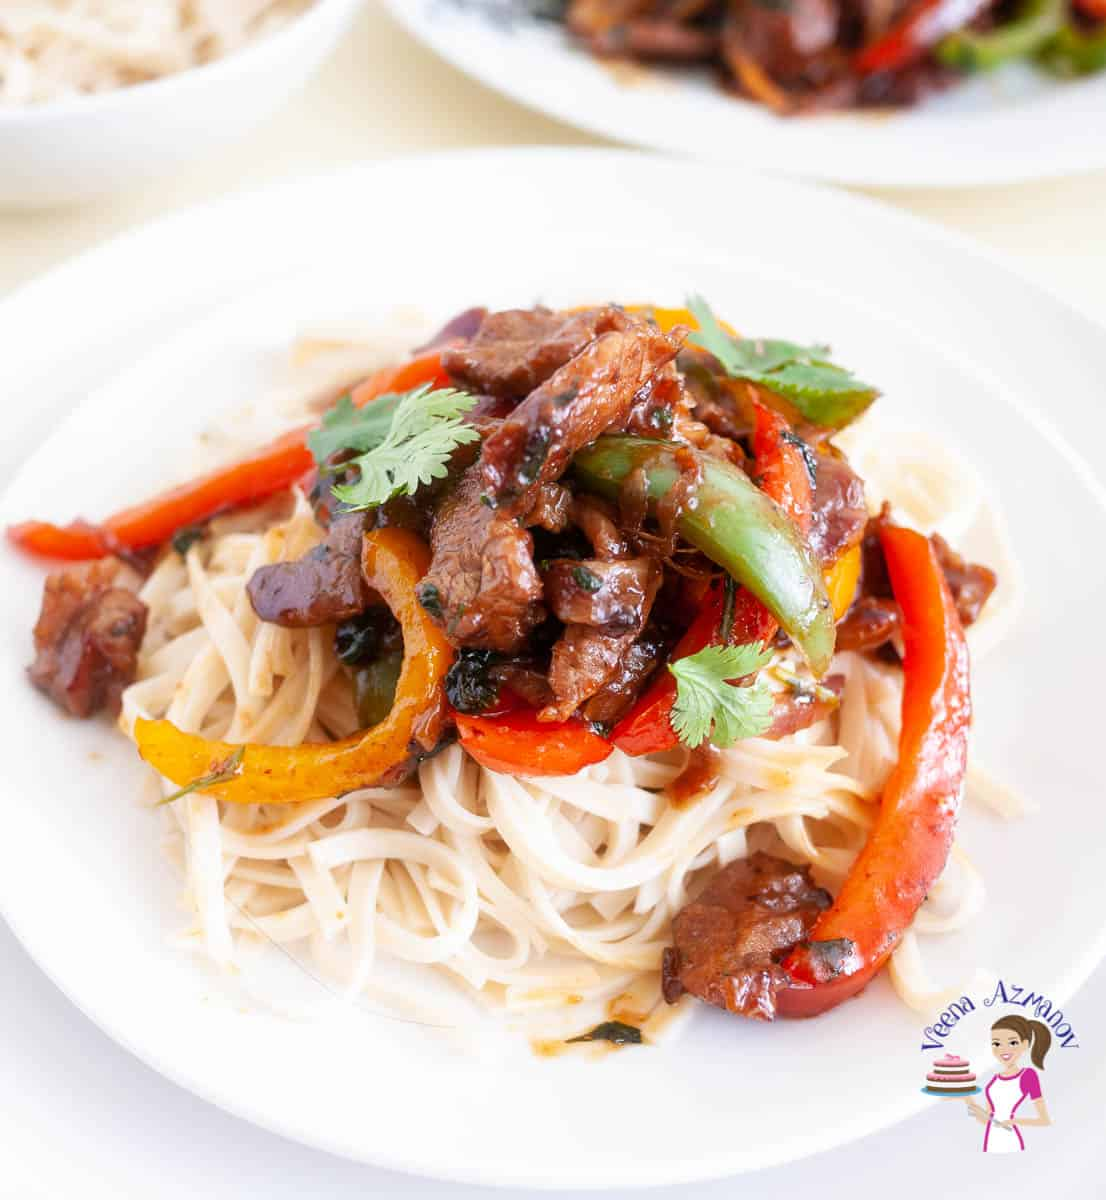 White plate with beef and peppers stir fry over noodles